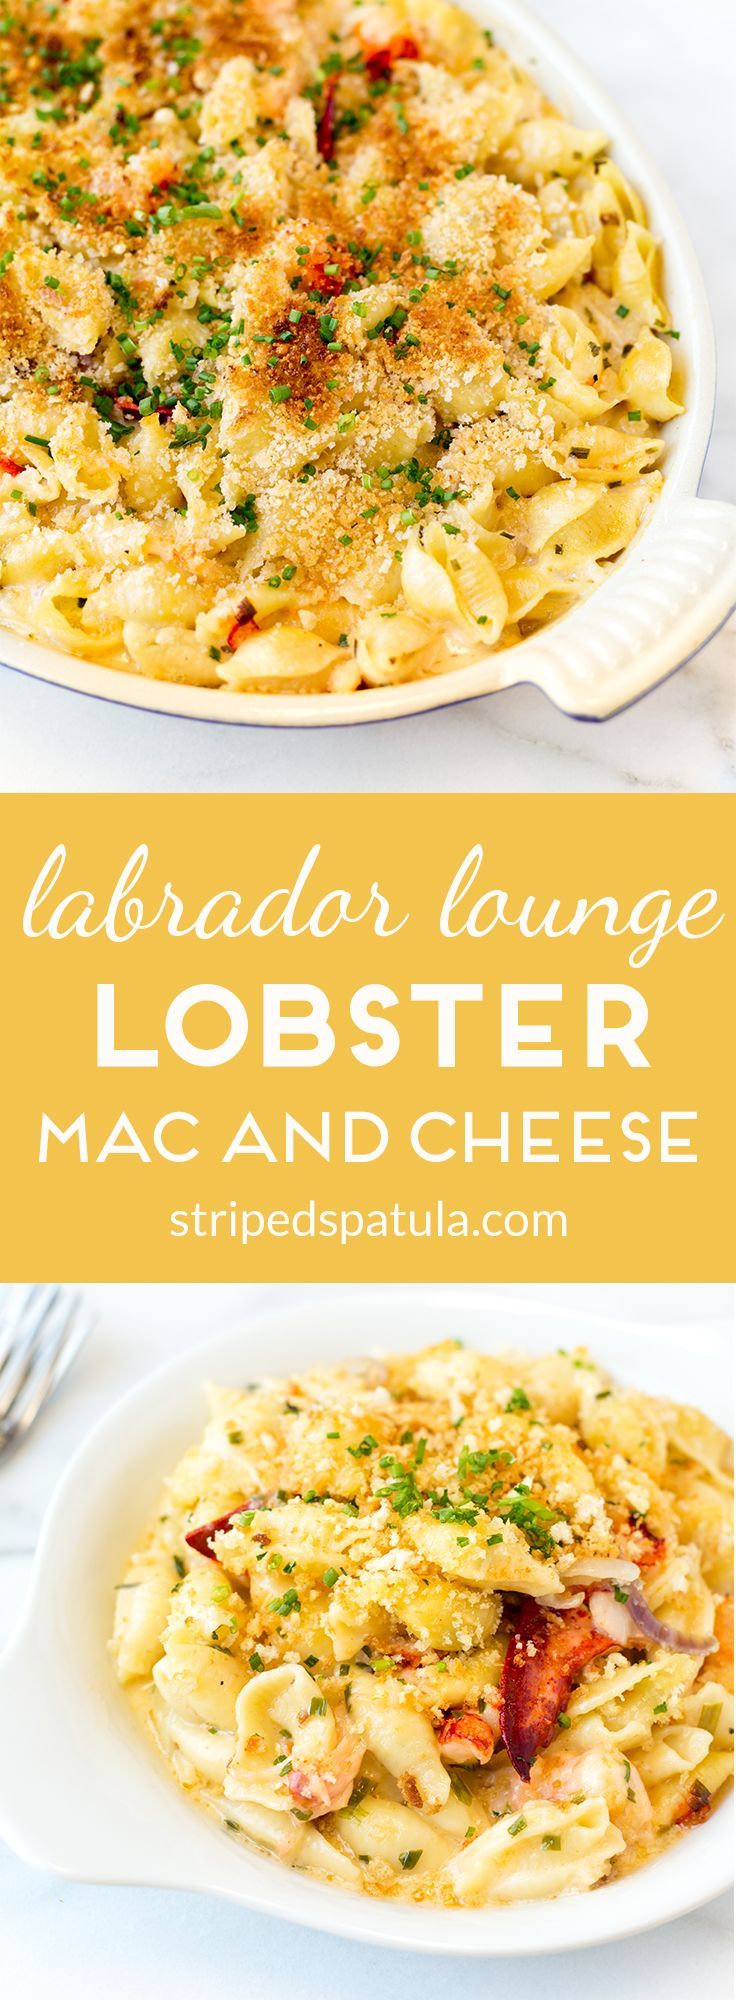 Sponsored The Recipe For Rich And Creamy Lobster Mac And Cheese From Labrador Lounge In